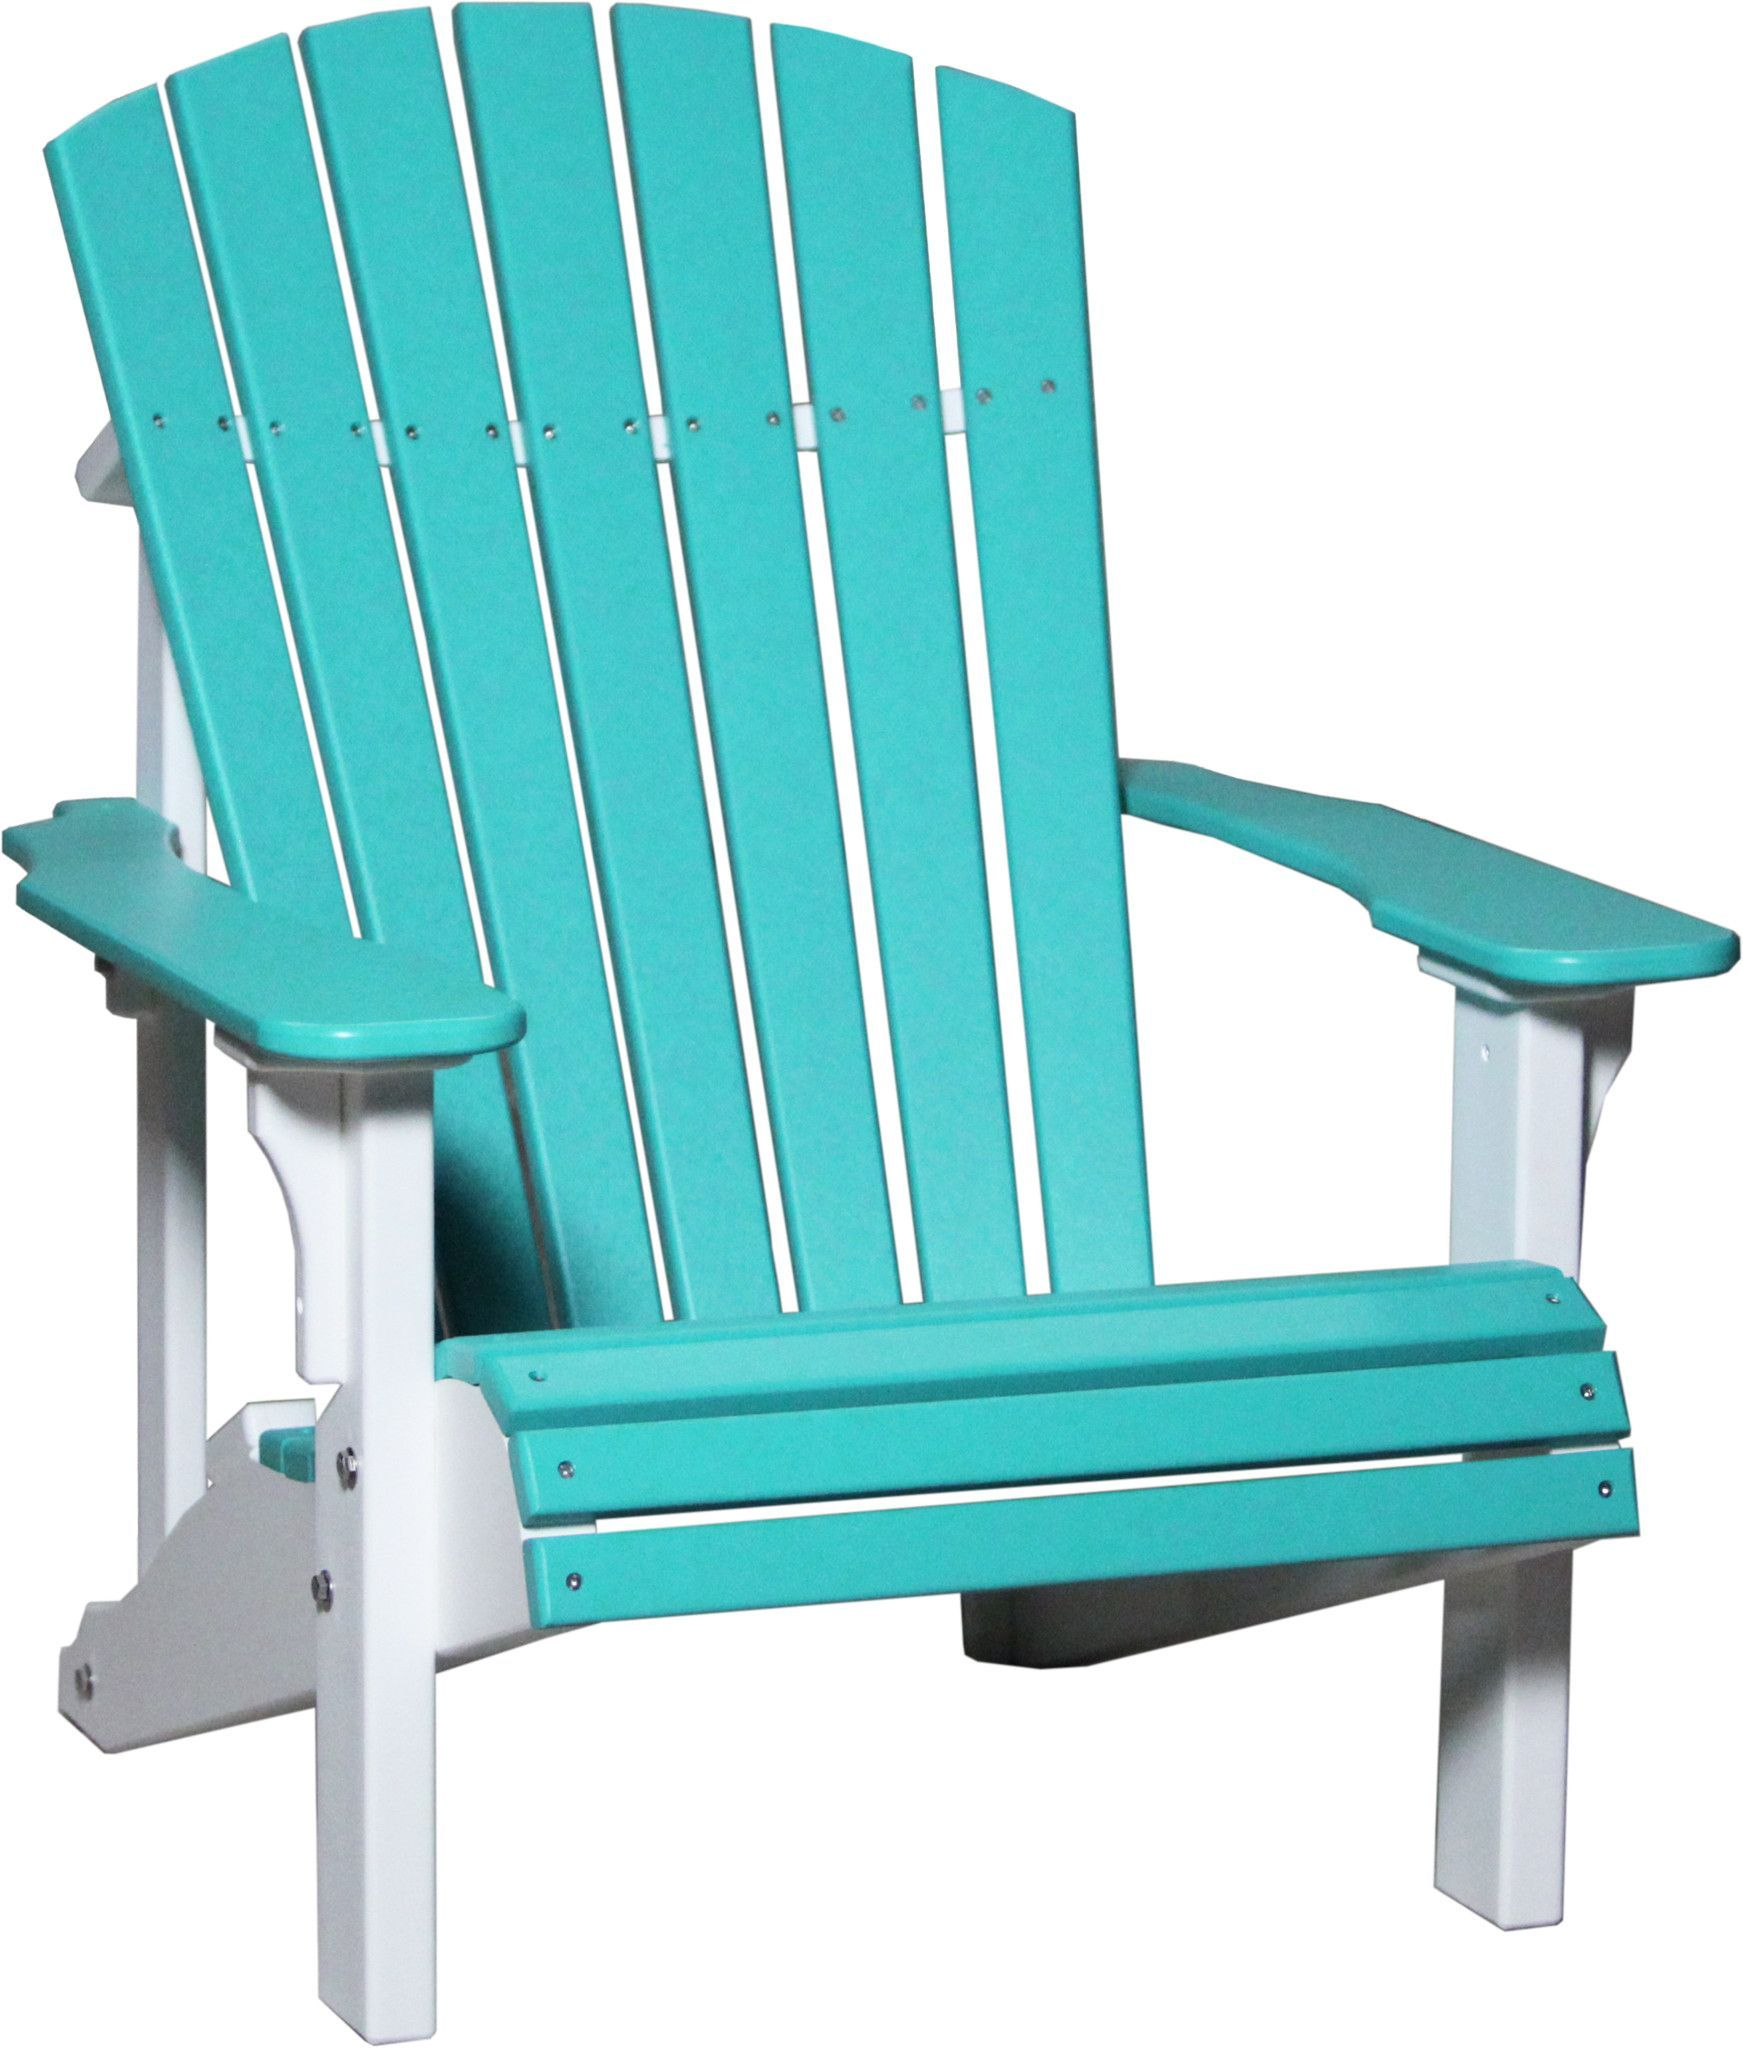 Luxcraft Recycled Plastic Deluxe Adirondack Chair Lead Time To Ship 14 Weeks Plastic Adirondack Chairs Adirondack Chair Plastic Patio Furniture